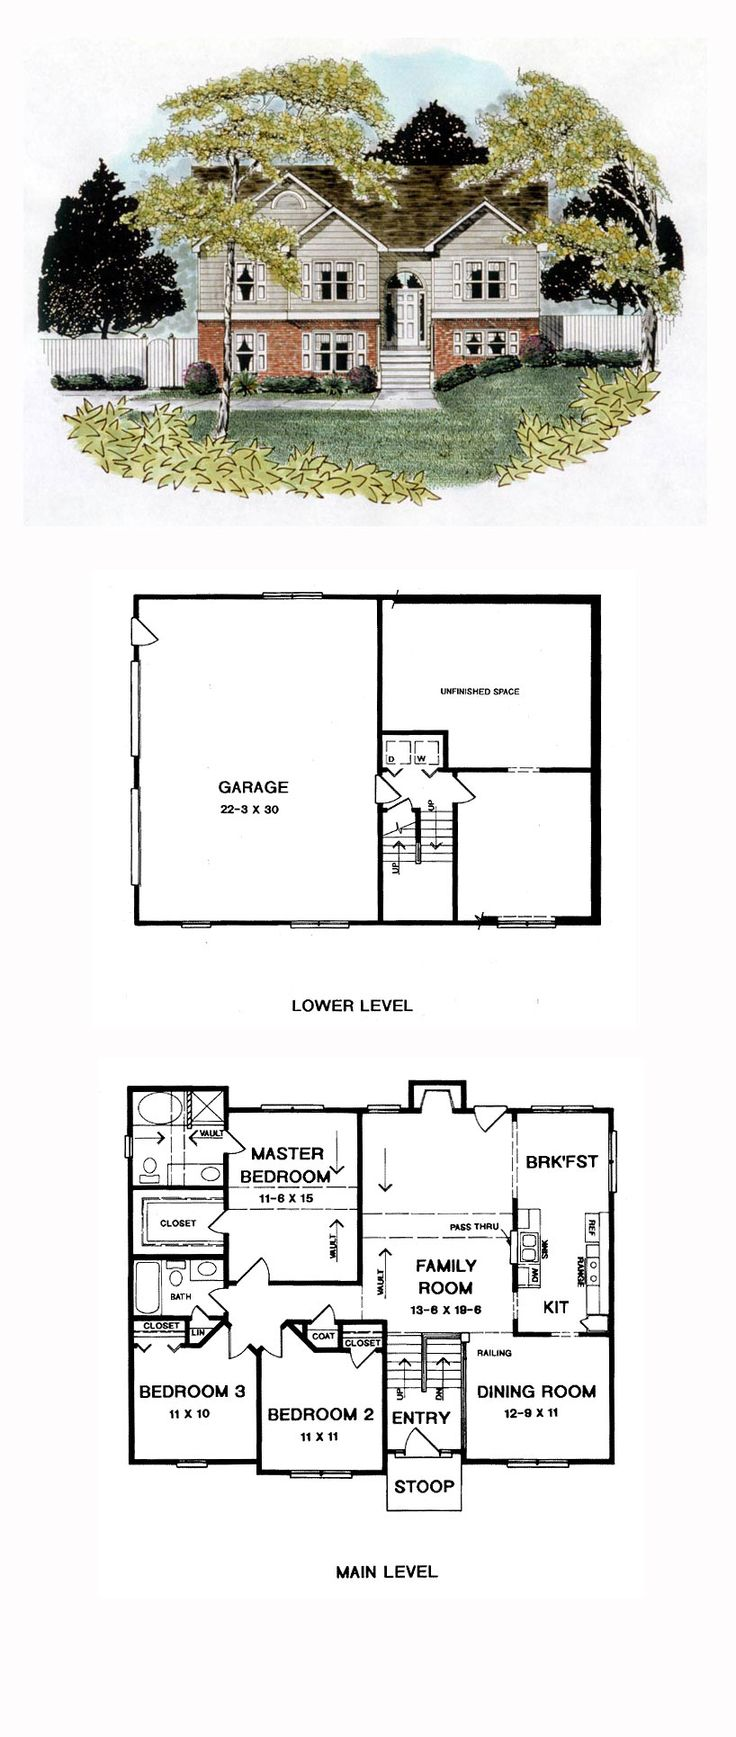 16 best split level house plans images on pinterest cool house cool house plans offers a unique variety of professionally designed home plans with floor plans by accredited home designers styles include country house